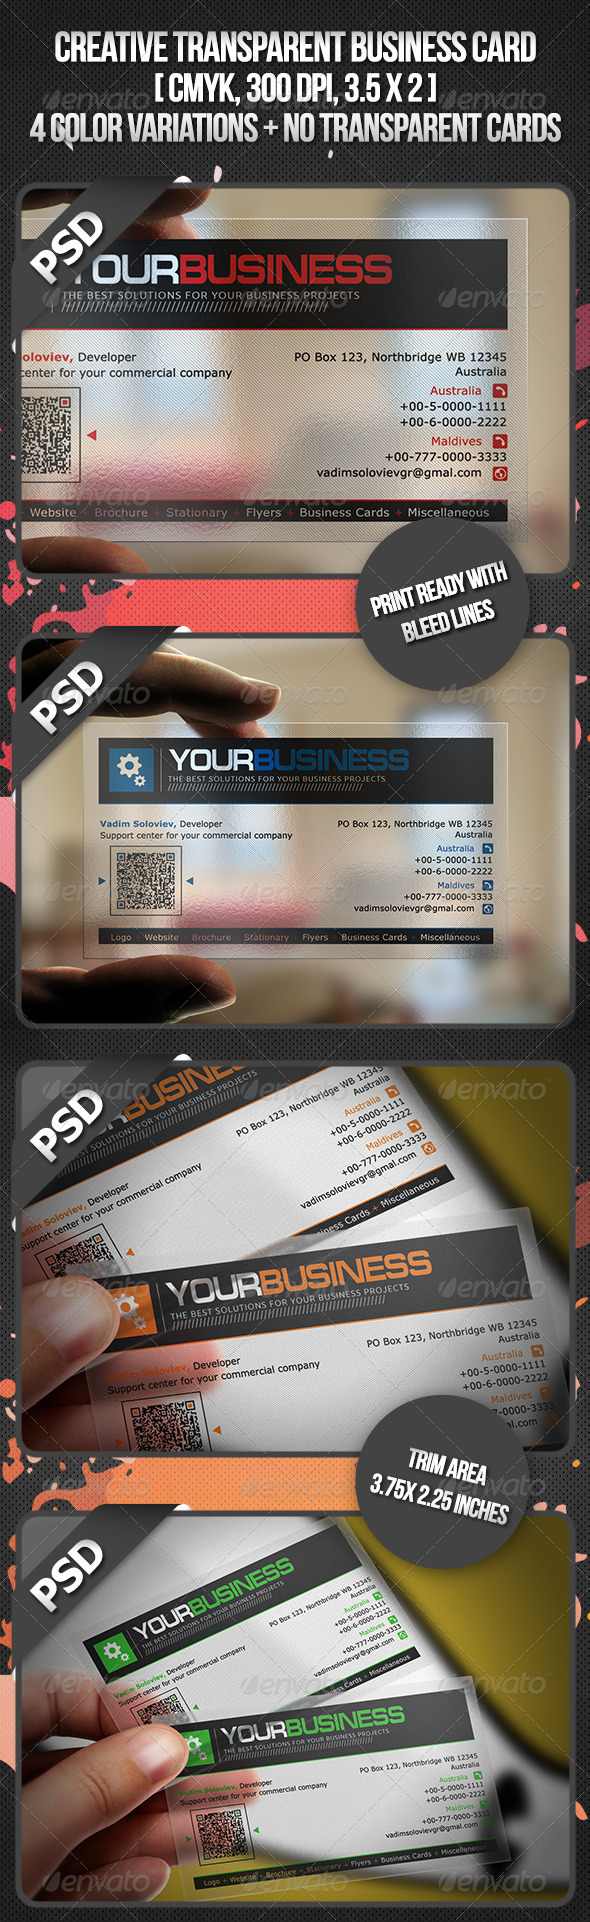 GraphicRiver Creative Transparent Business Card 3635632